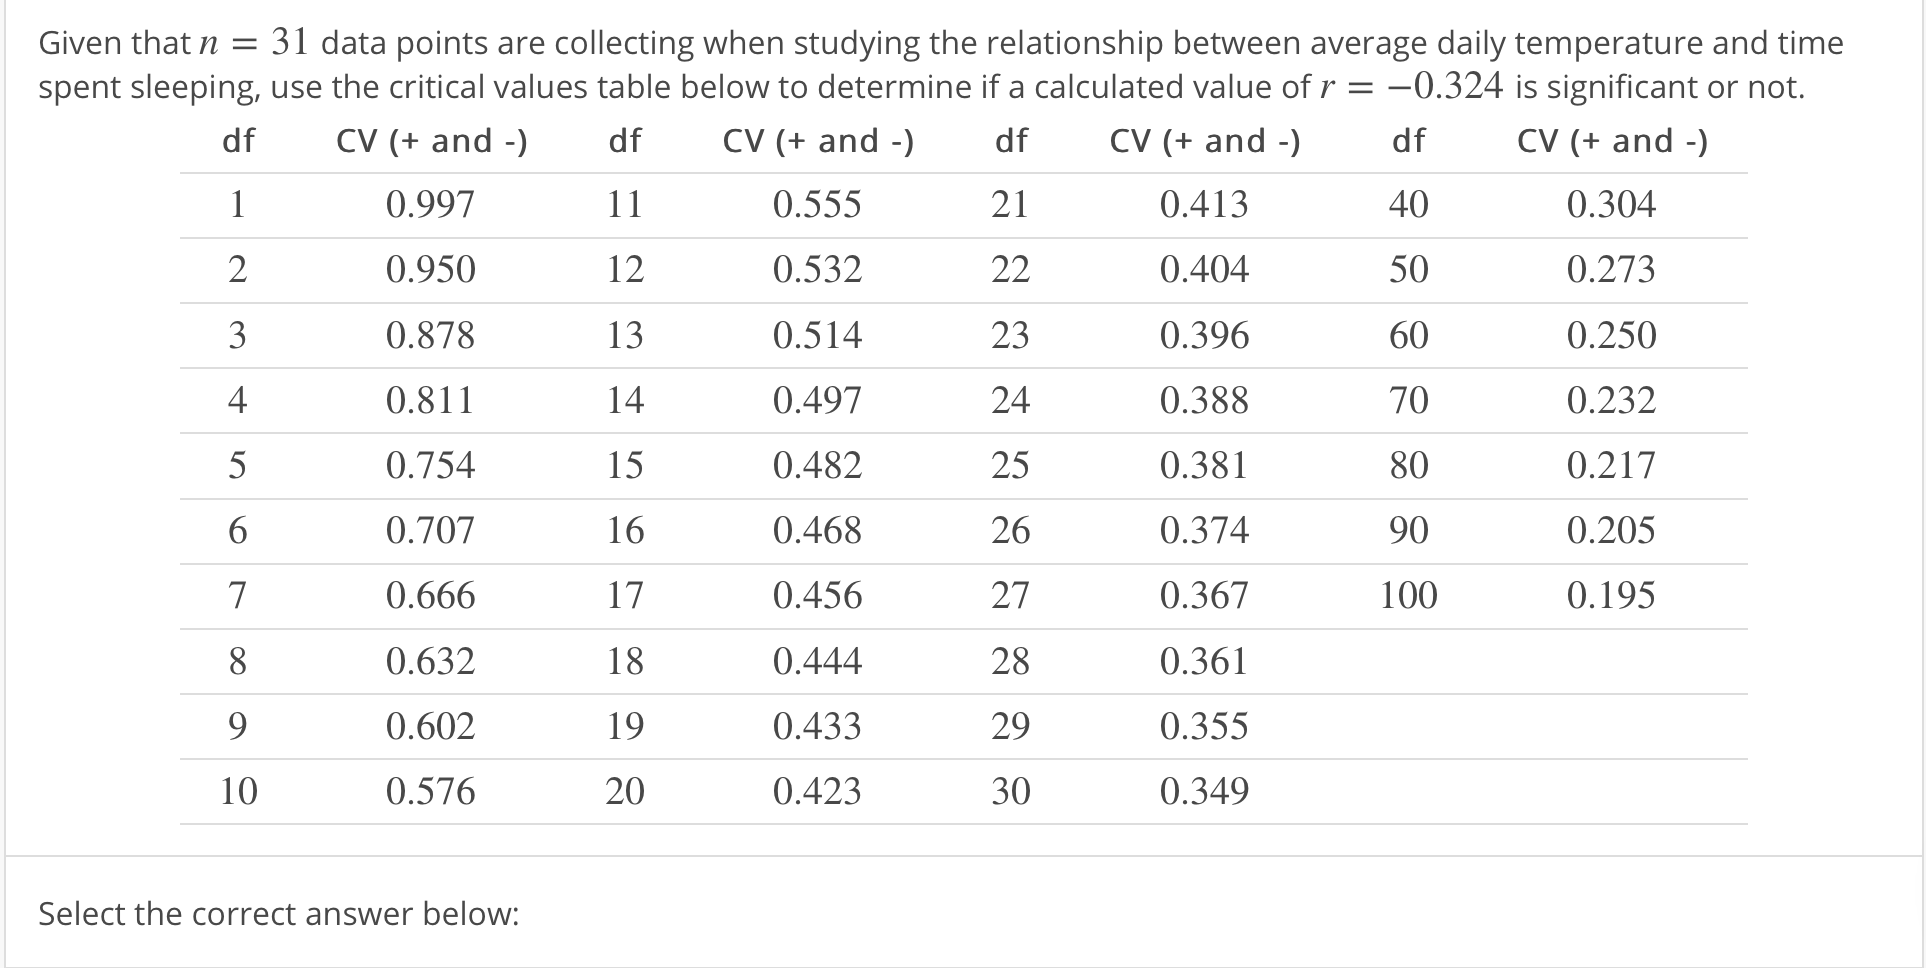 Given that n = 31 data points are collecting when studying the relationship between average daily temperature and time spent sleeping, use the critical values table below to determine if a calculated value of r =-0.324 is significant or not. CV (+ and -) 0.304 0.273 0.250 0.232 0.217 0.205 0.195 df 40 50 60 70 80 90 100 df CV (+ and 0.997 0.950 0.878 0.811 0.754 0.707 0.666 0.632 0.602 0.576 df CV (+ and - dfCV (+ and -) 0.555 0.532 0.514 0.497 0.482 0.468 0.456 0.444 0.433 0.423 0.413 0.404 0.396 0.388 0.381 0.374 0.367 0.361 0.355 0.349 12 2 3 4 13 23 24 25 26 27 28 29 30 15 16 17 18 19 20 10 Select the correct answer below: